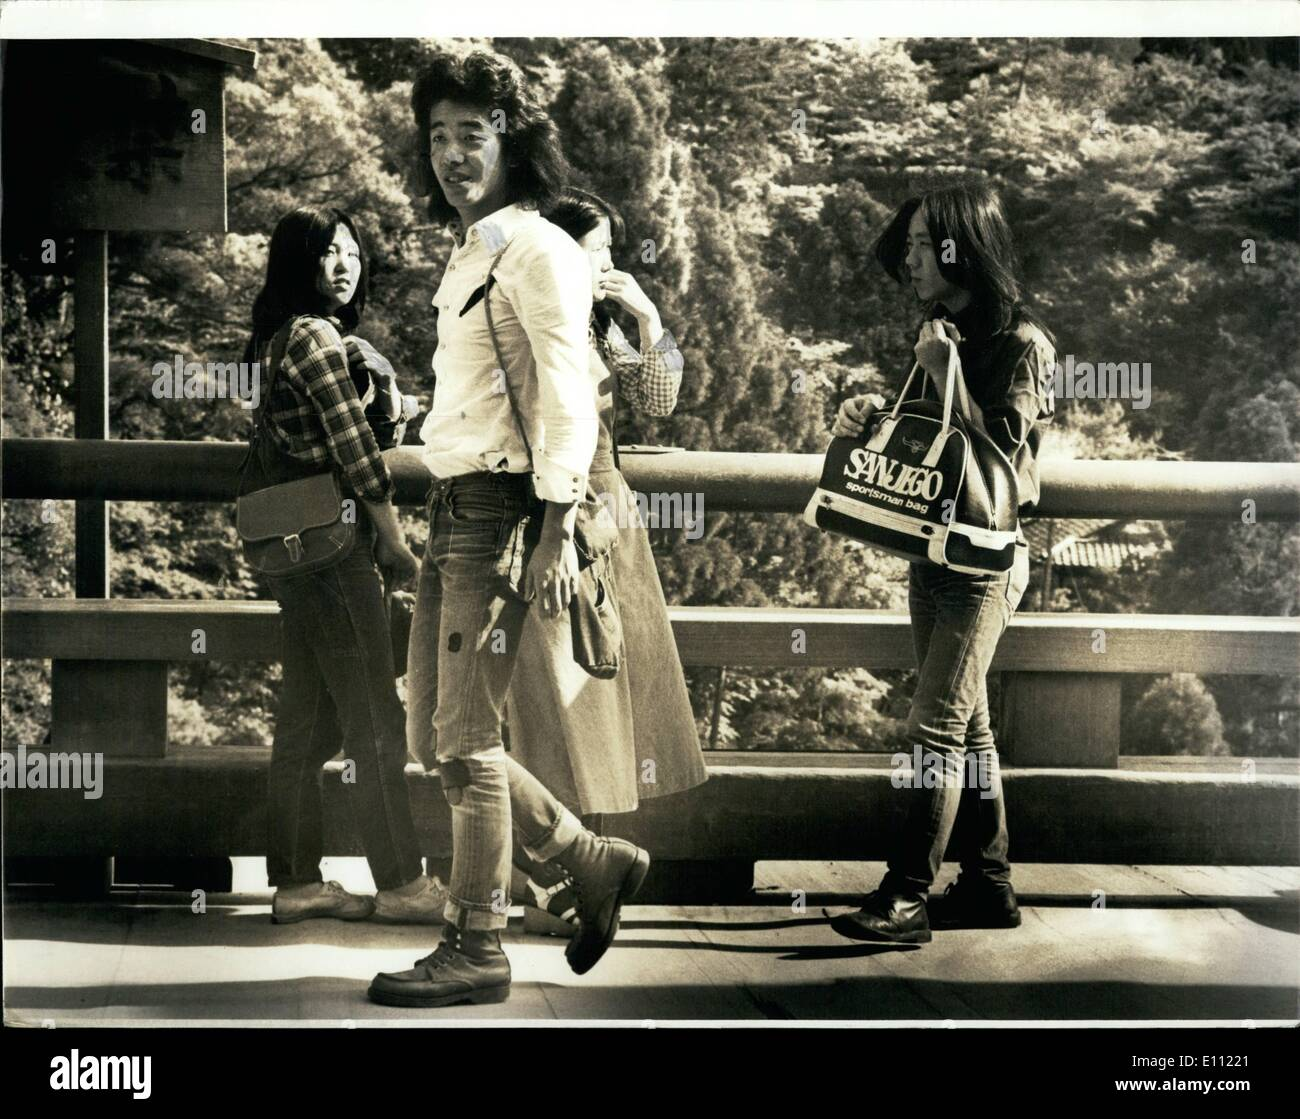 Apr. 04, 1975 - Kyoto, Japan: Dungaree Clad Students visiting Religious Temples in the Ancient city of Kyoto Japan. - Stock Image